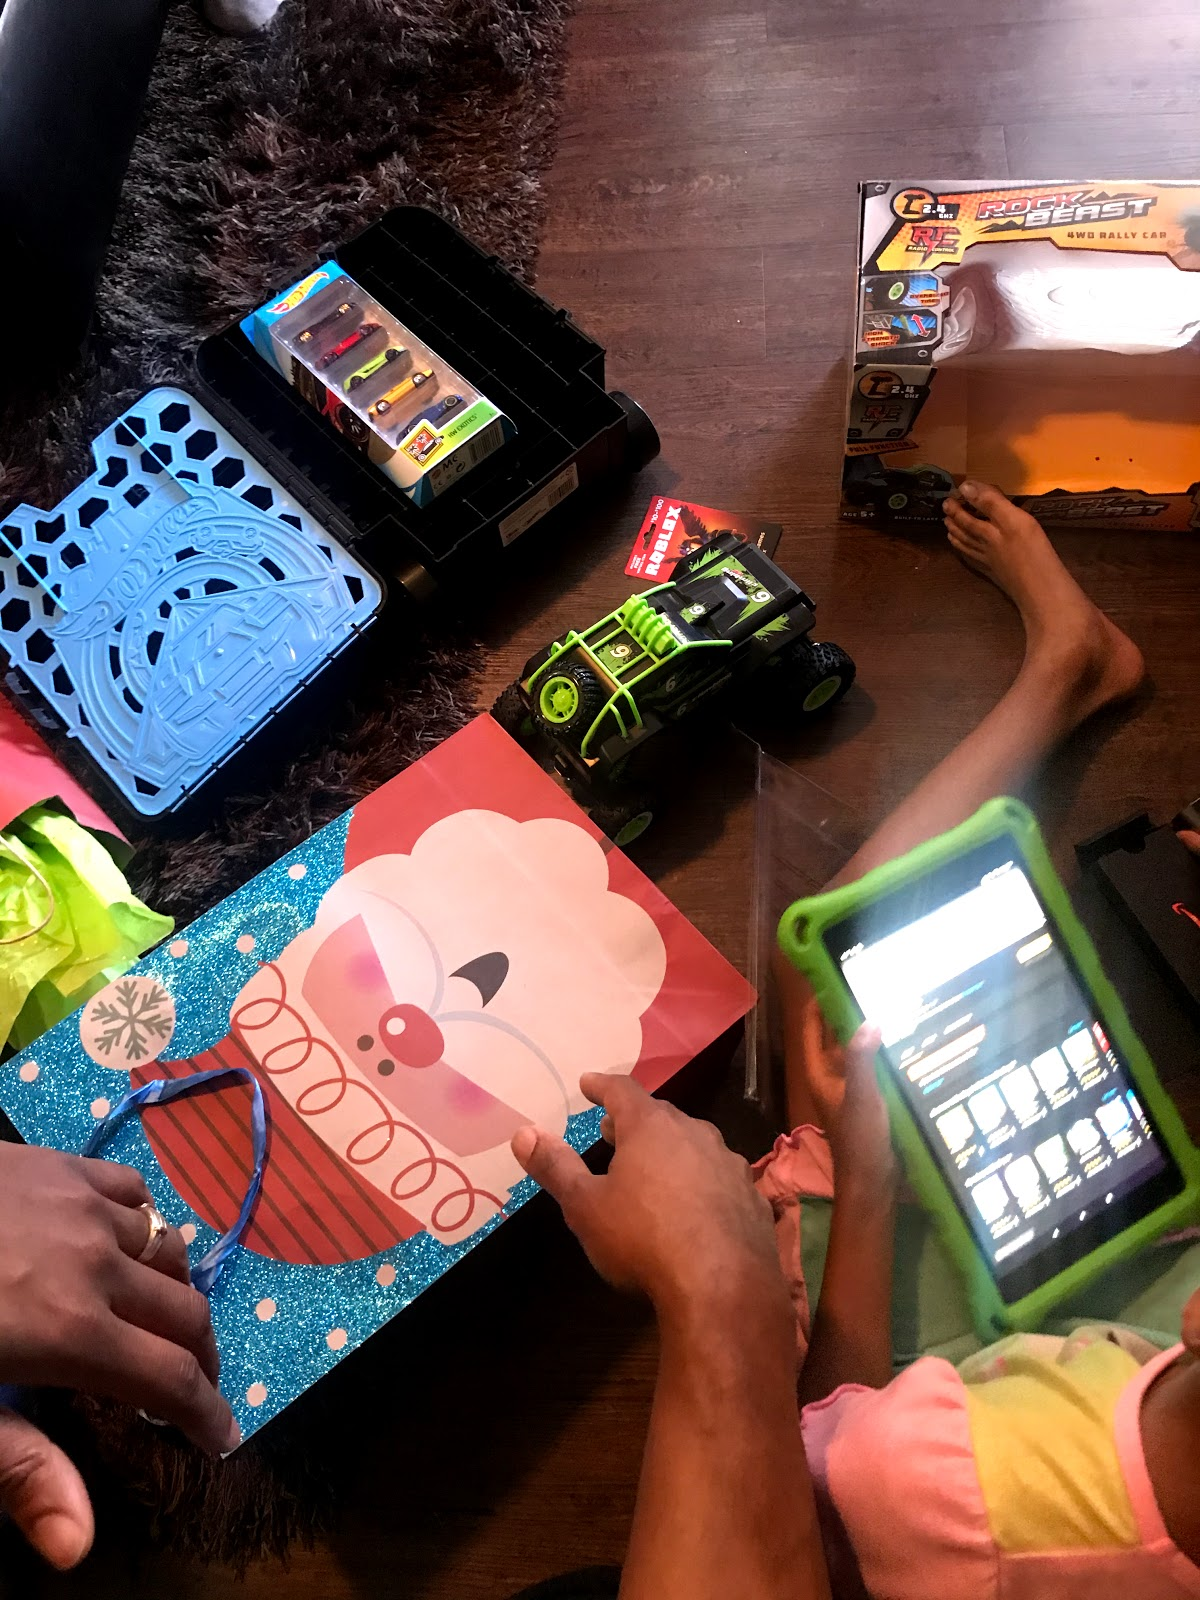 The family opening up Fire HD tablets for Christmas 2019